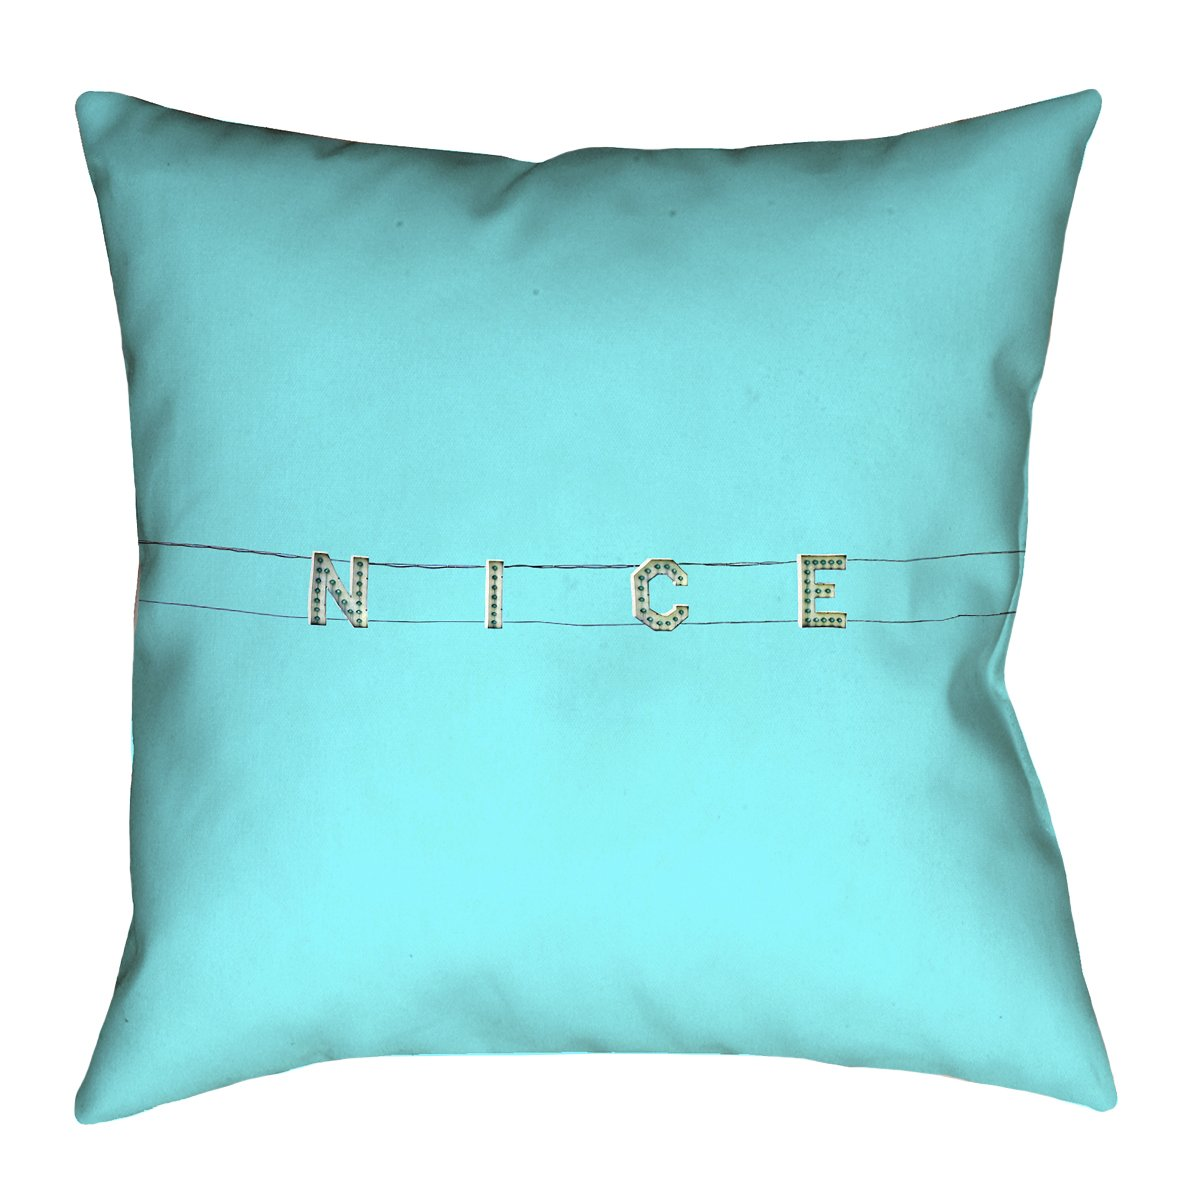 ArtVerse Katelyn Smith 18 x 18 Spun Polyester Double Sided Print with Concealed Zipper /& Insert Blue Nice Sign Pillow